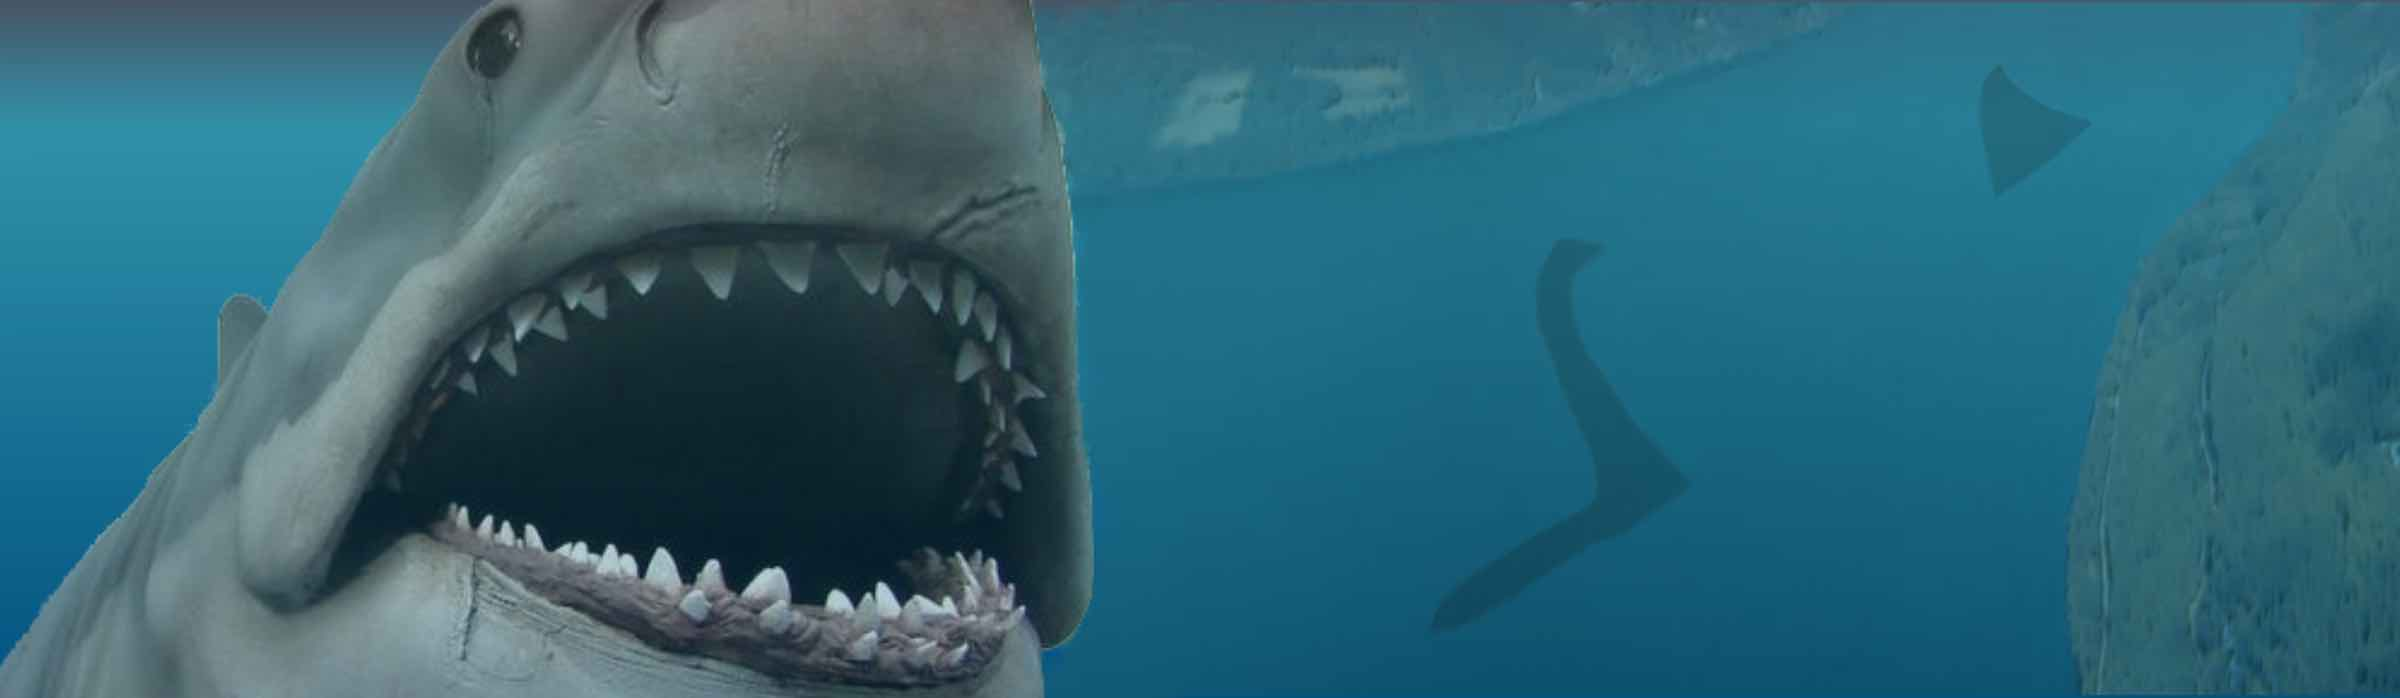 We have the whole scoop on 'Sharkloch' that has 'Jaws' fans fired up over the effects. You're going to want to see this one. Here's the latest.